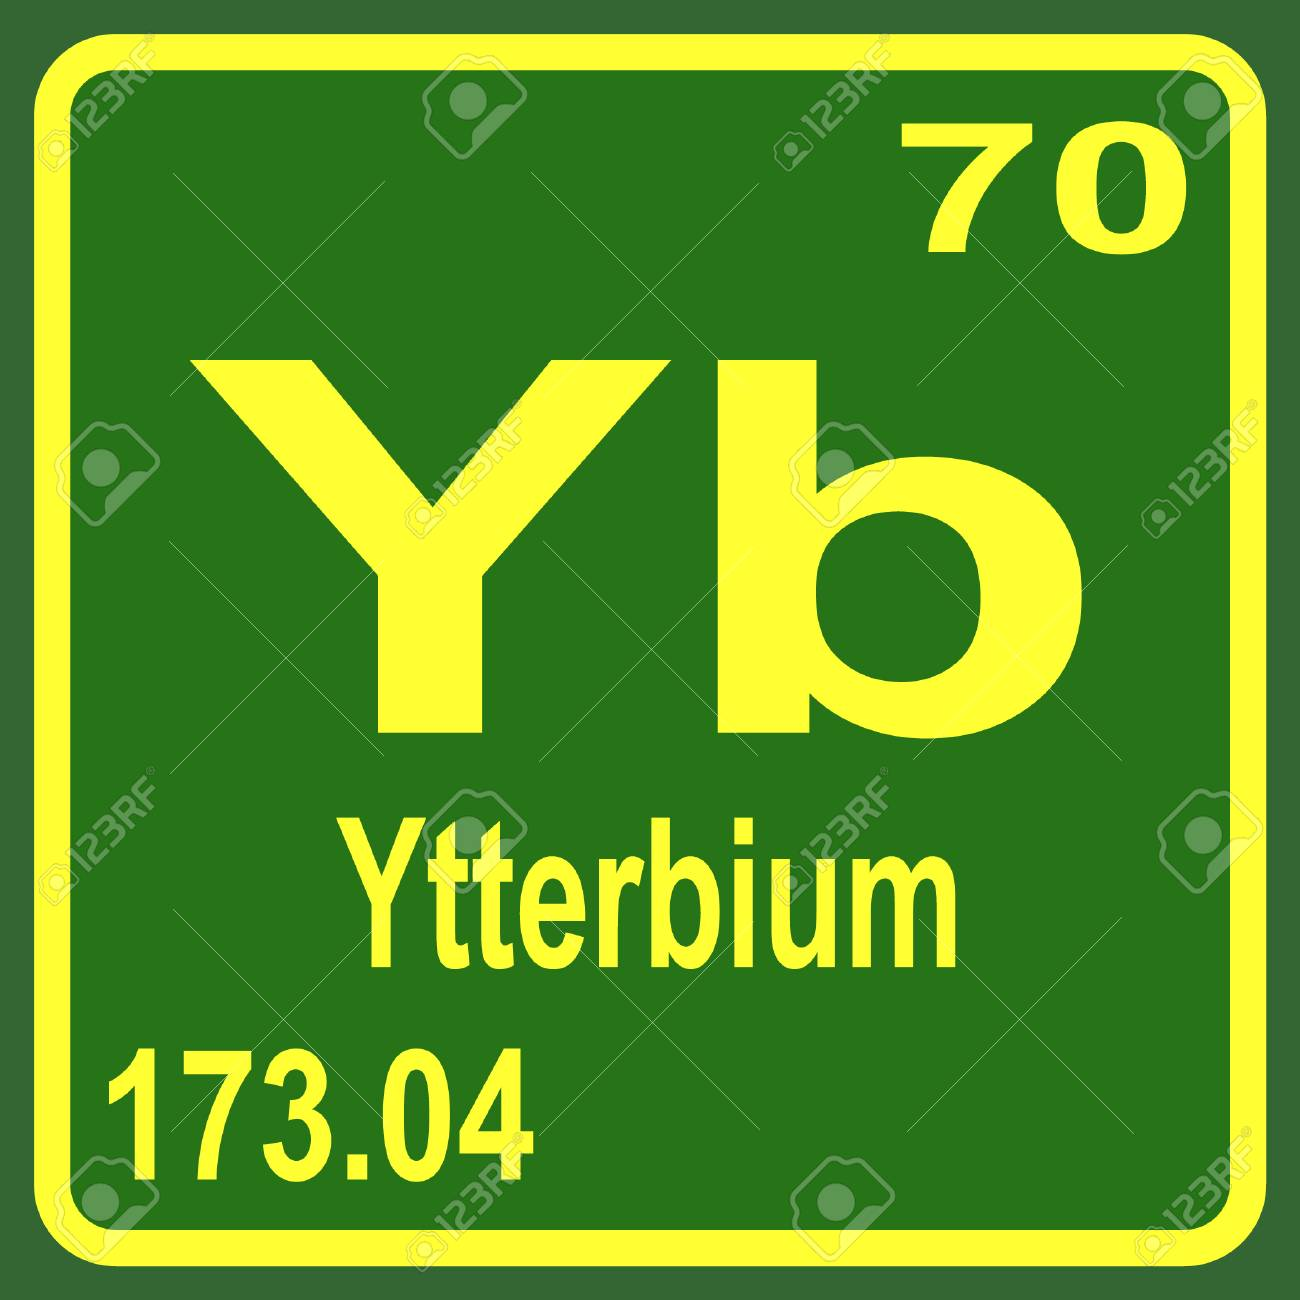 Periodic table of elements ytterbium royalty free cliparts periodic table of elements ytterbium stock vector 53900674 urtaz Images